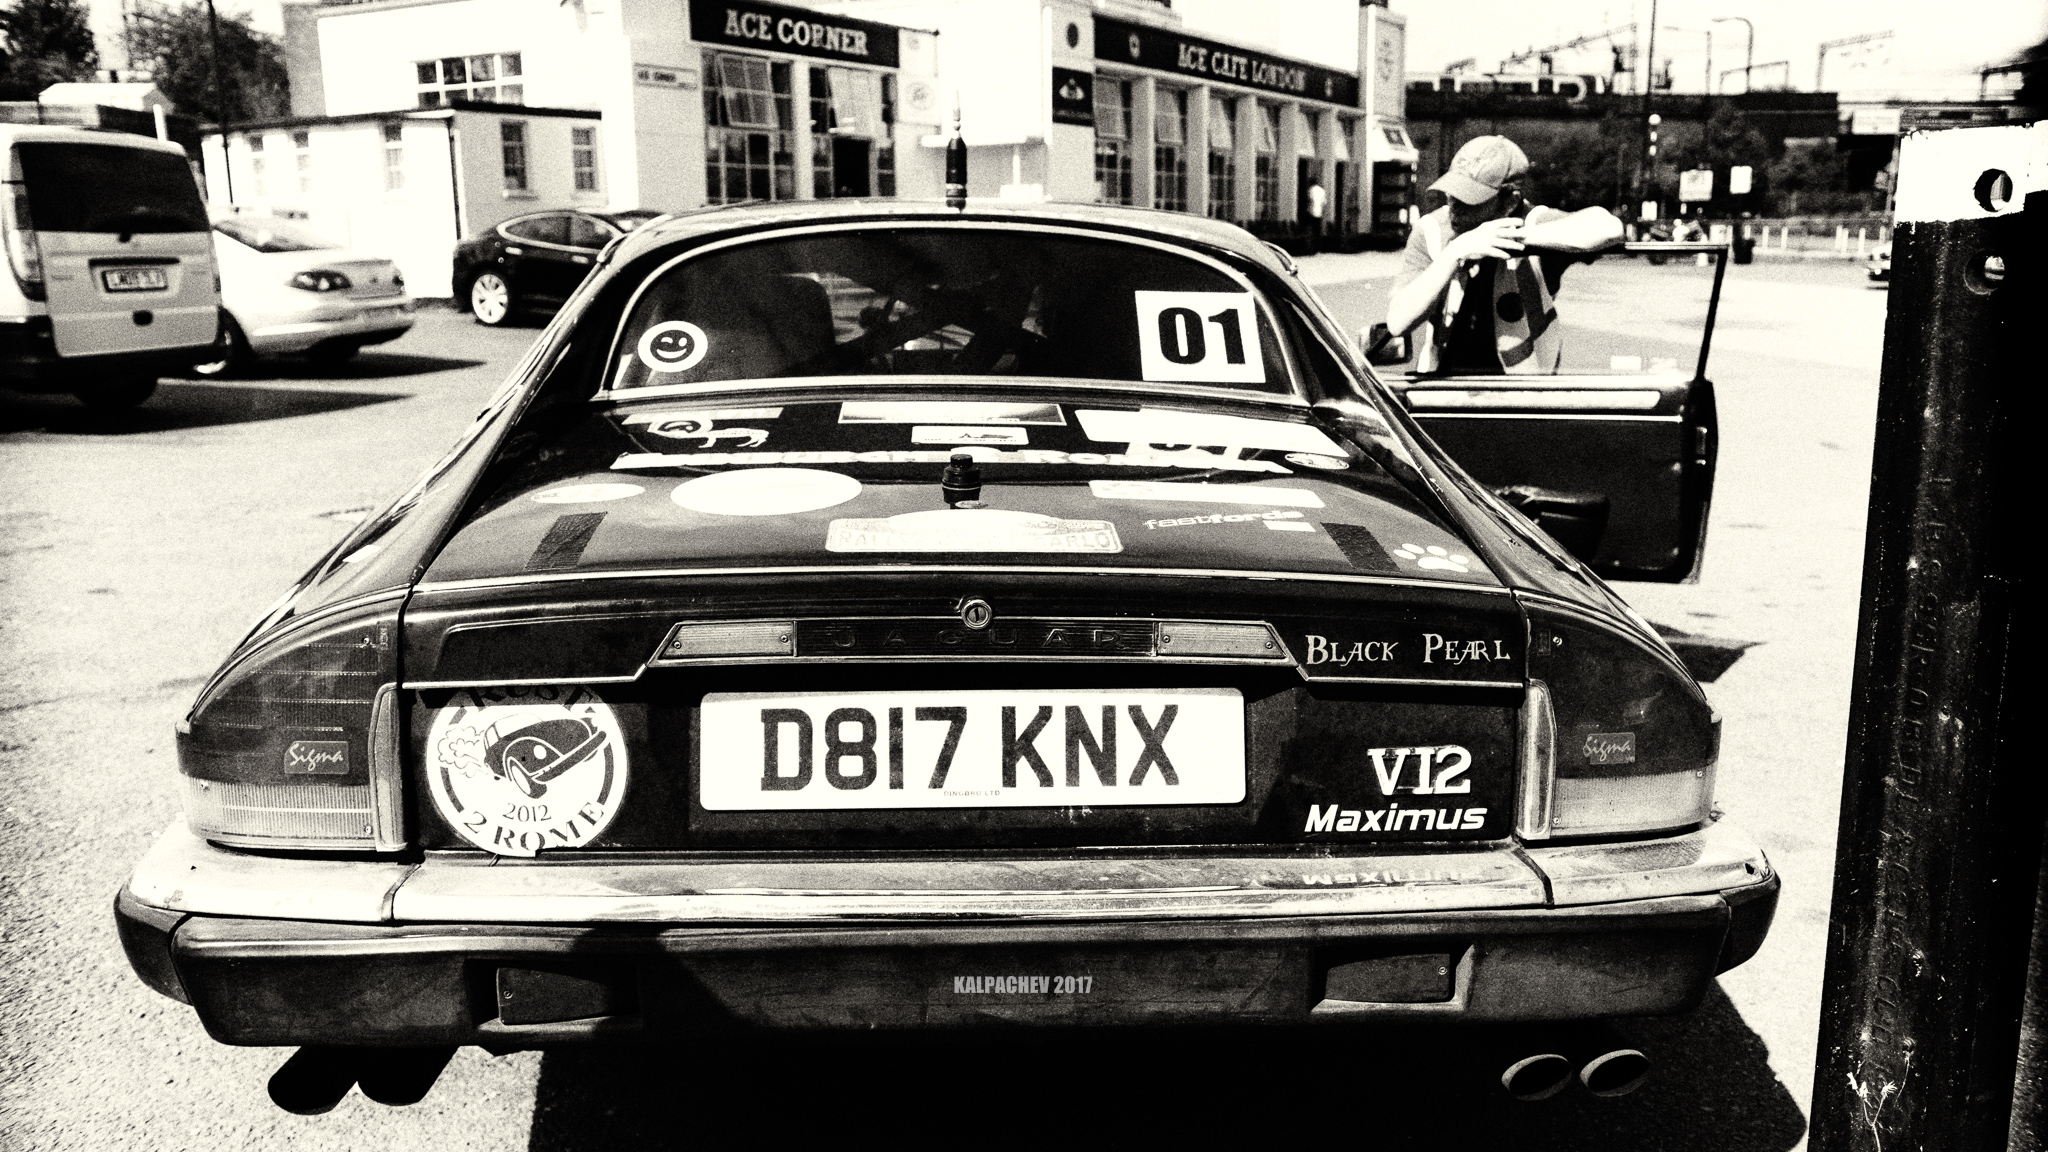 V12 Black pearl at the Ace Cafe London